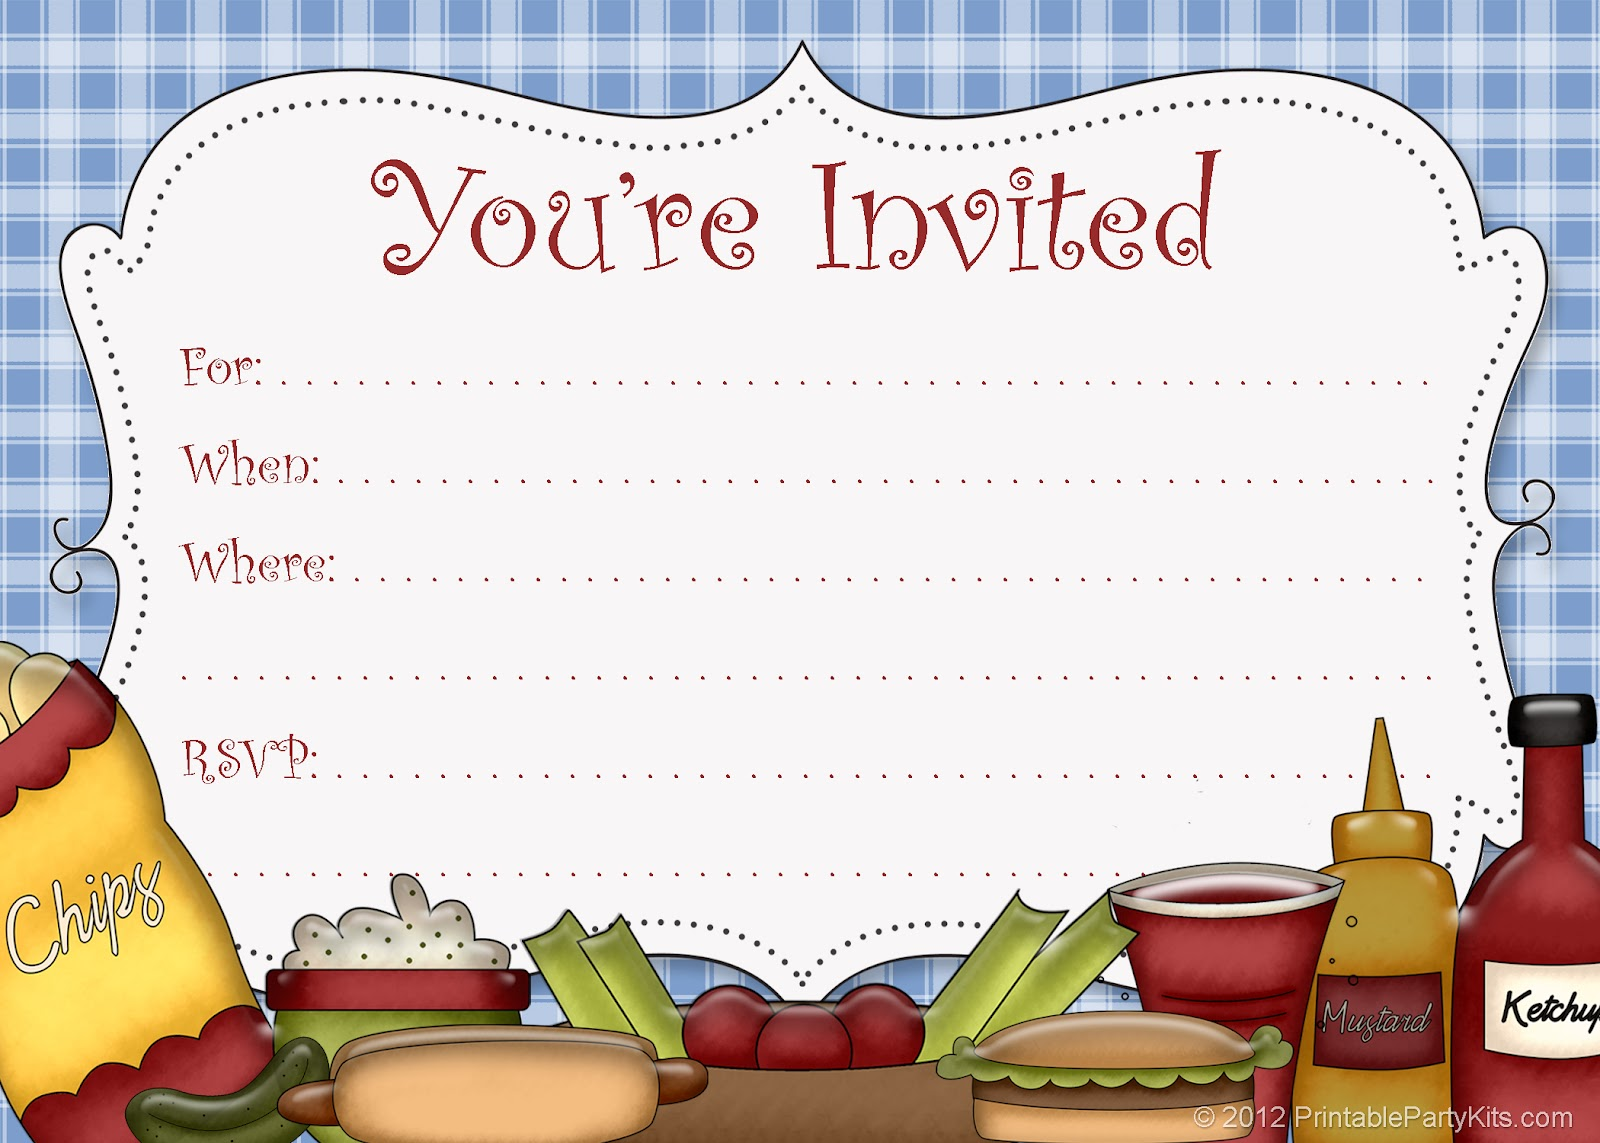 Free Printable Party Invitations Free Printable Picnic